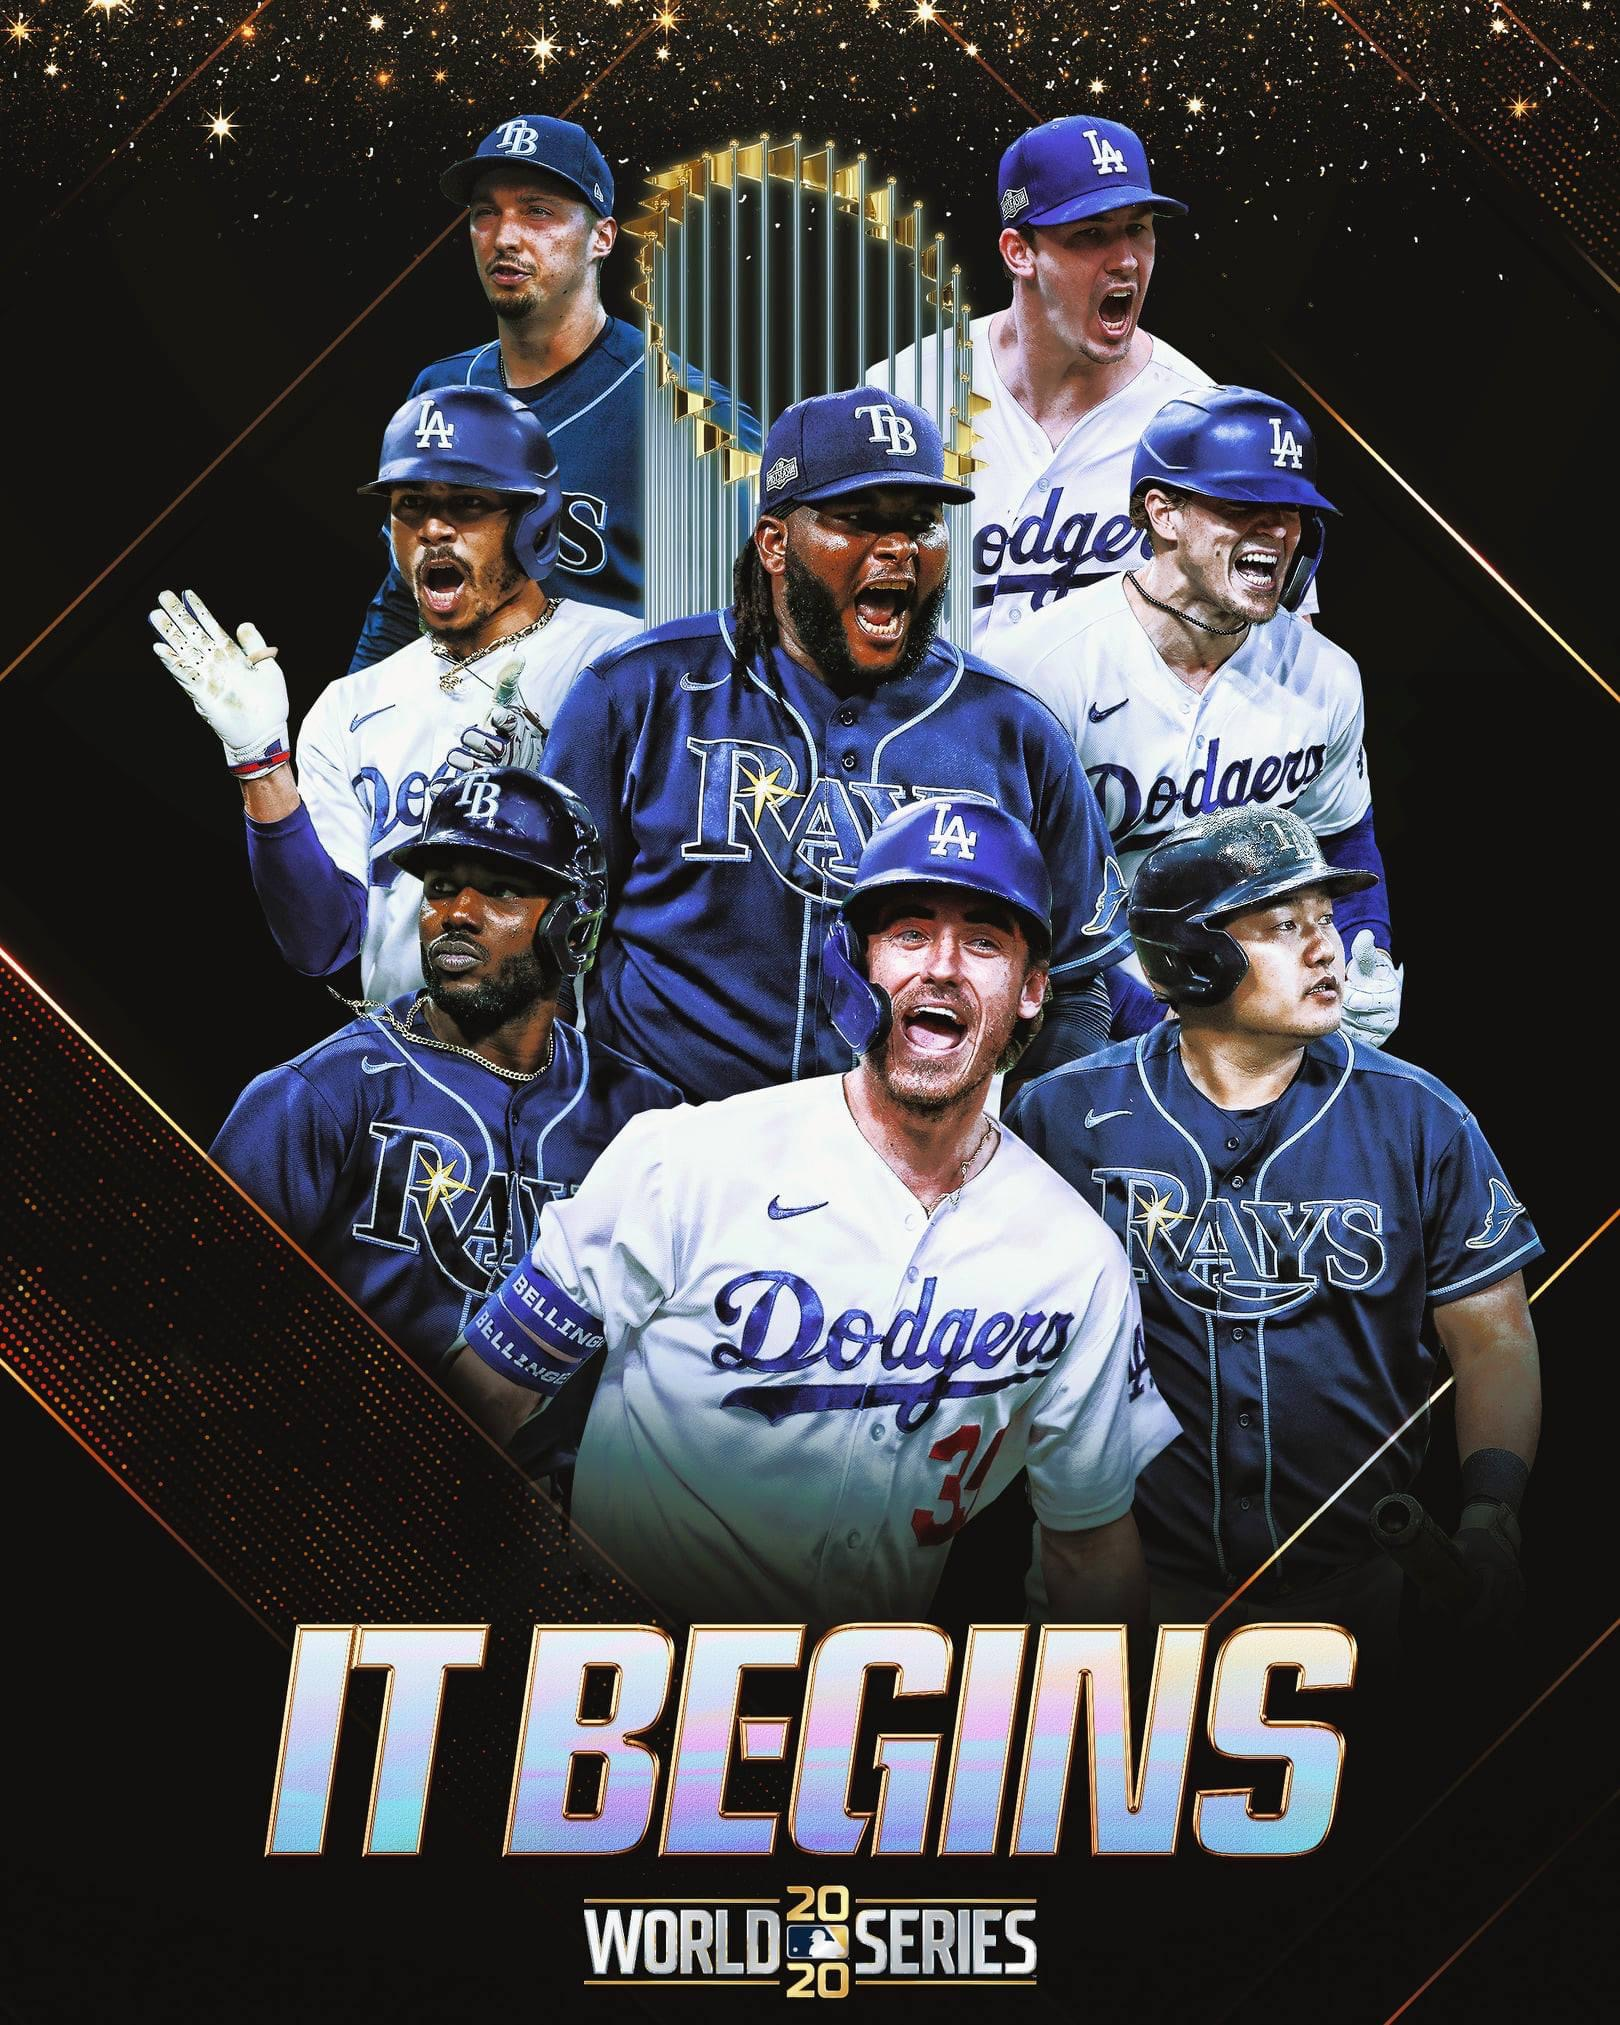 2020 WS Poster